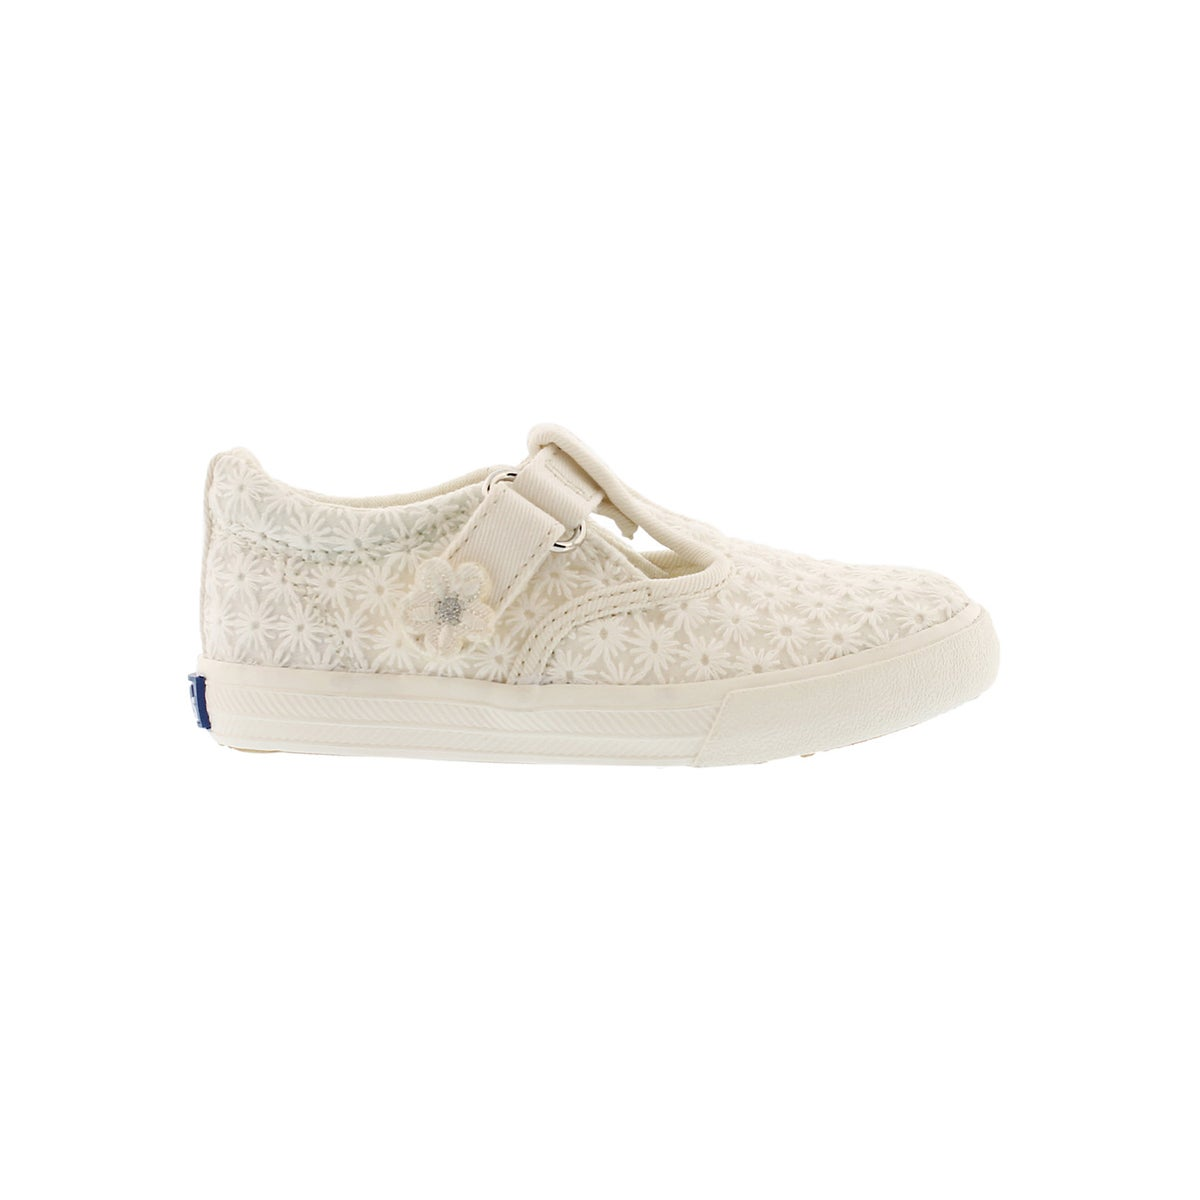 Infs-g Daphne ivory casual sneaker